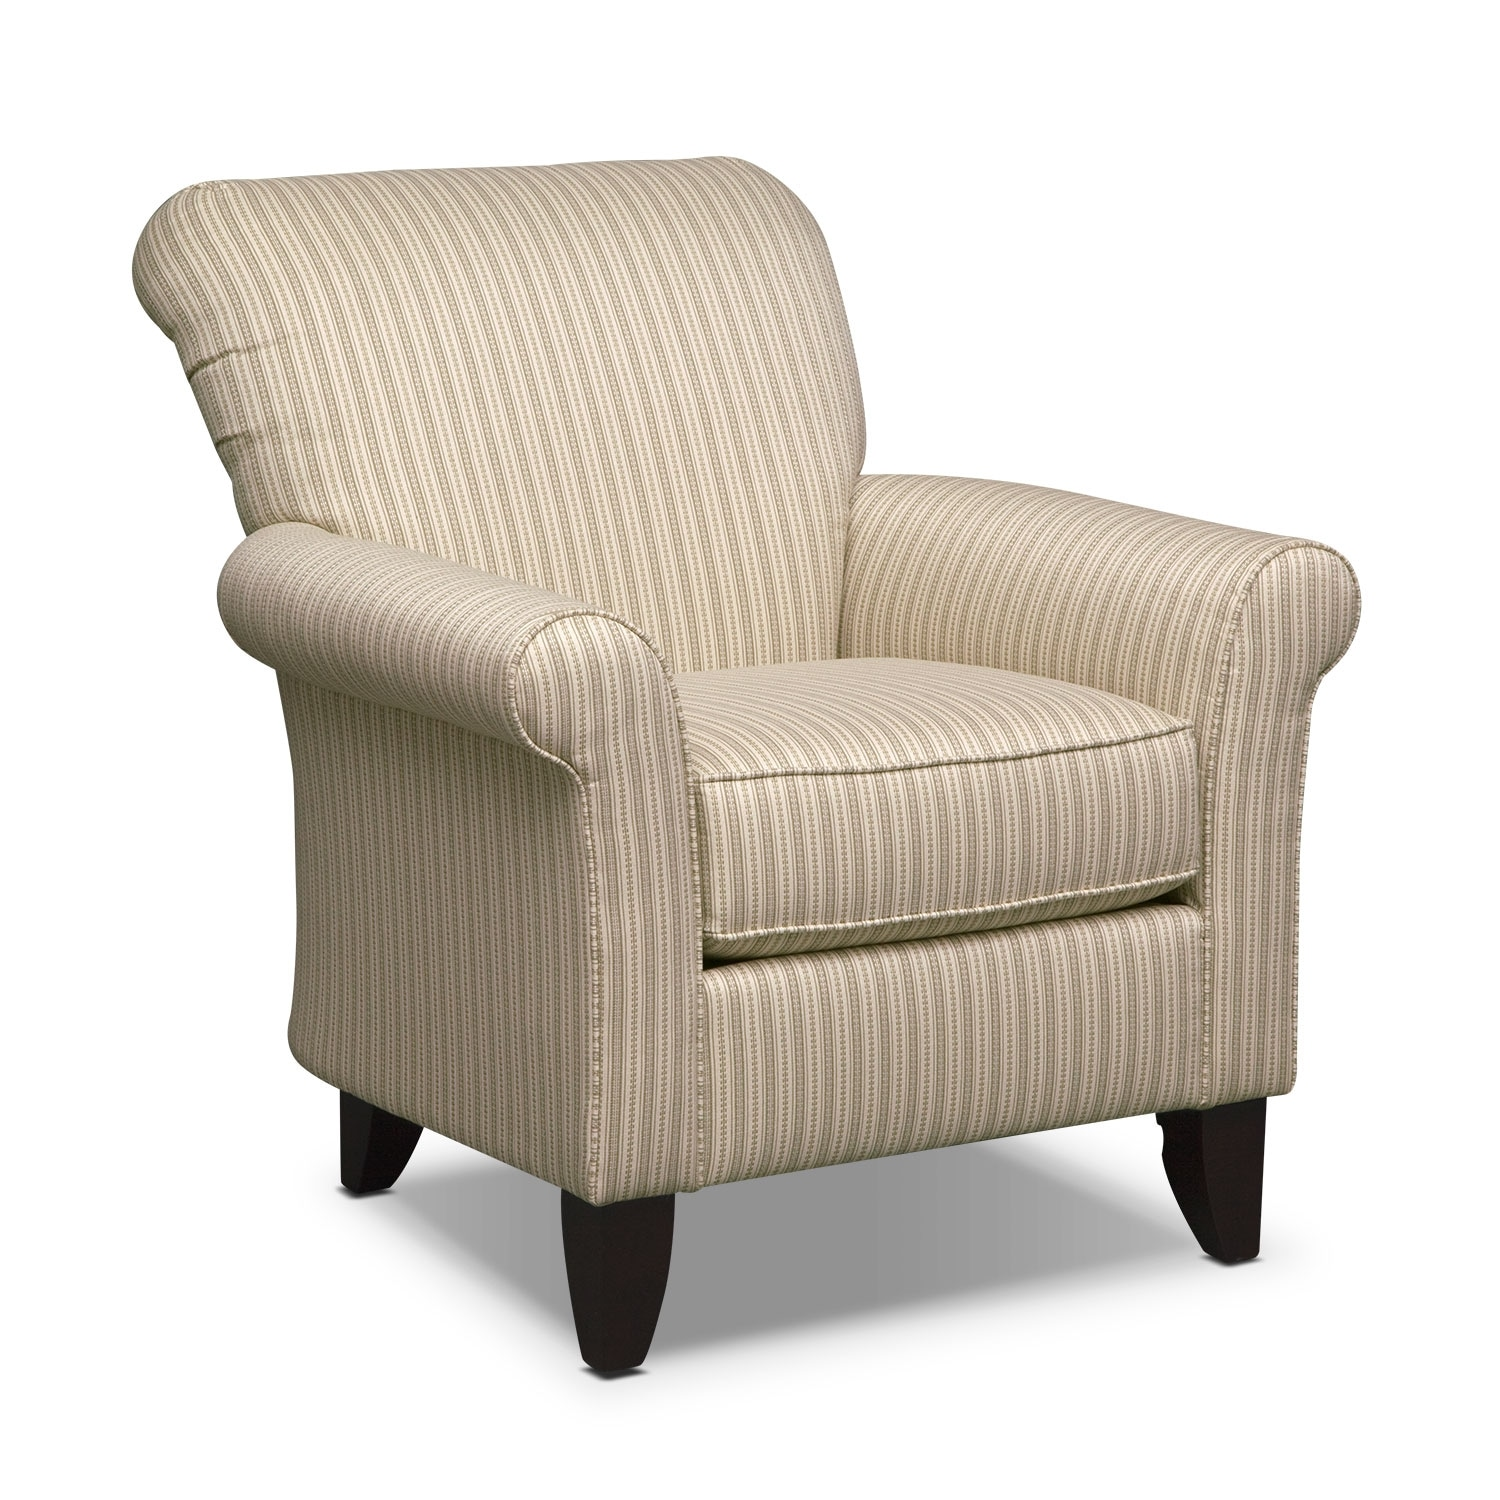 Living room furniture harlow khaki accent chair for Occasional furniture